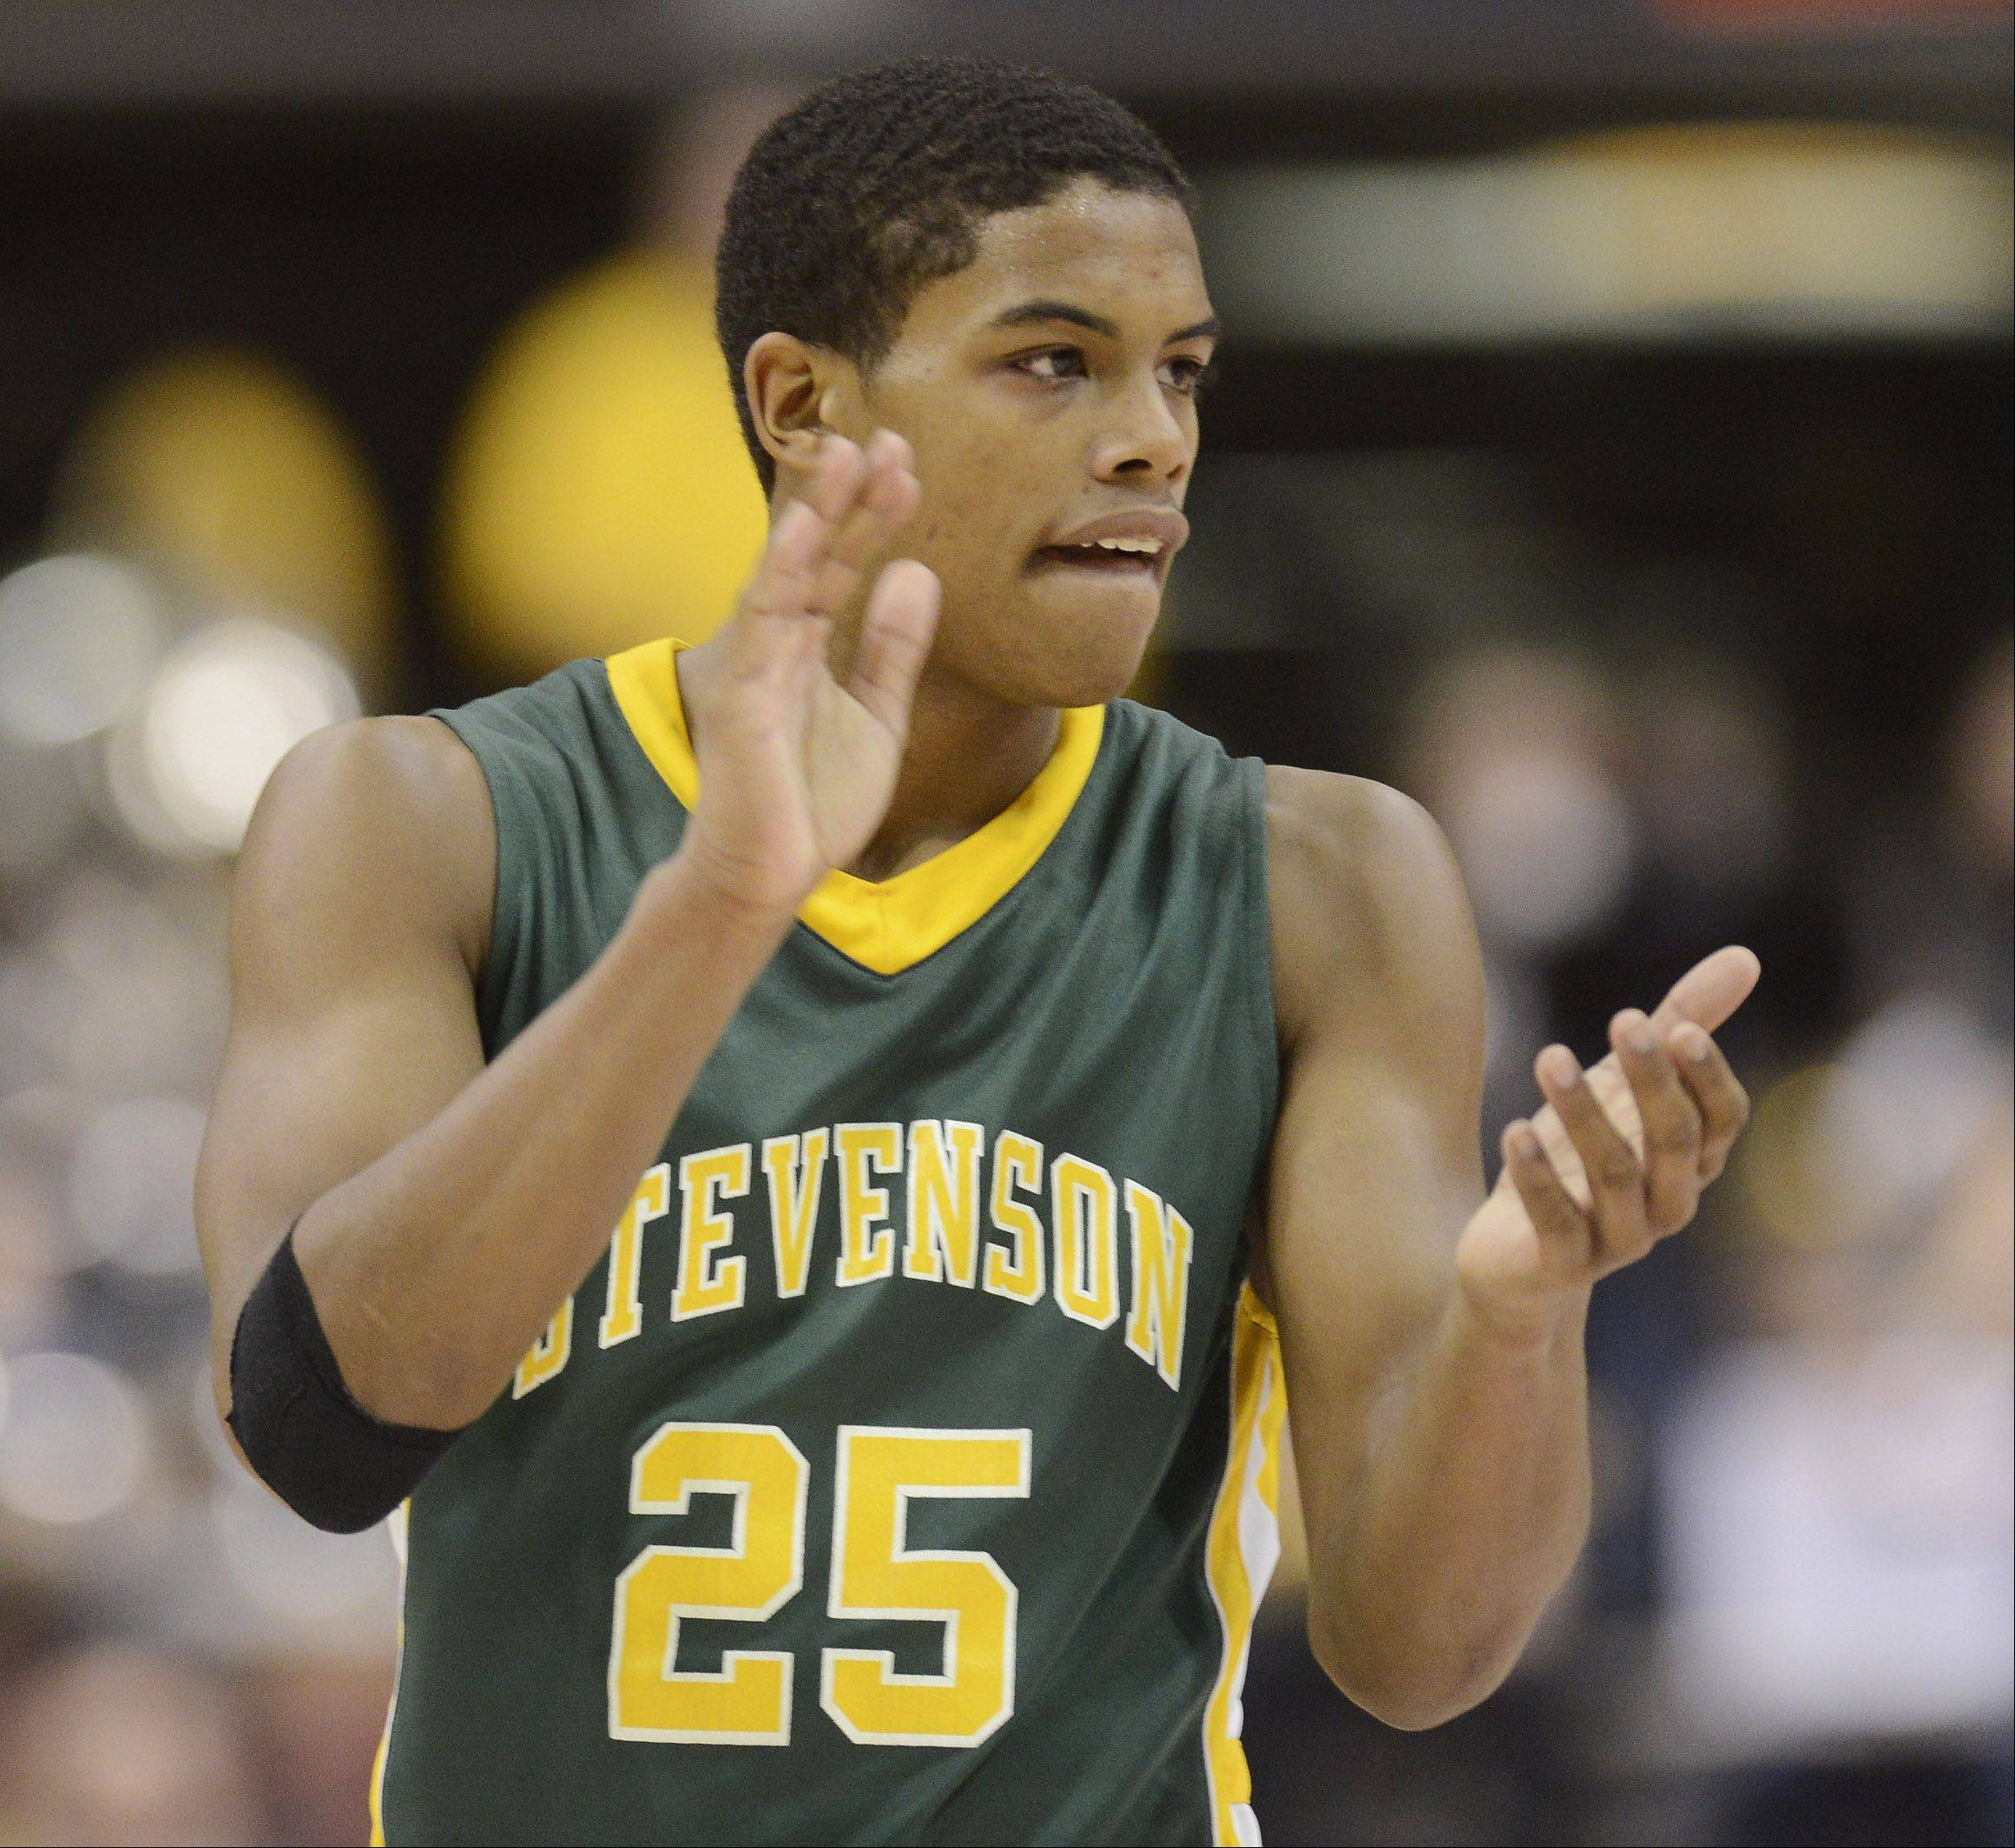 Stevenson's Cameron Green claps for his team as the Patriots close in on a victory over Edwardsville during the Class 4A boys basketball state semifinals at Carver Arena in Peoria on Friday.